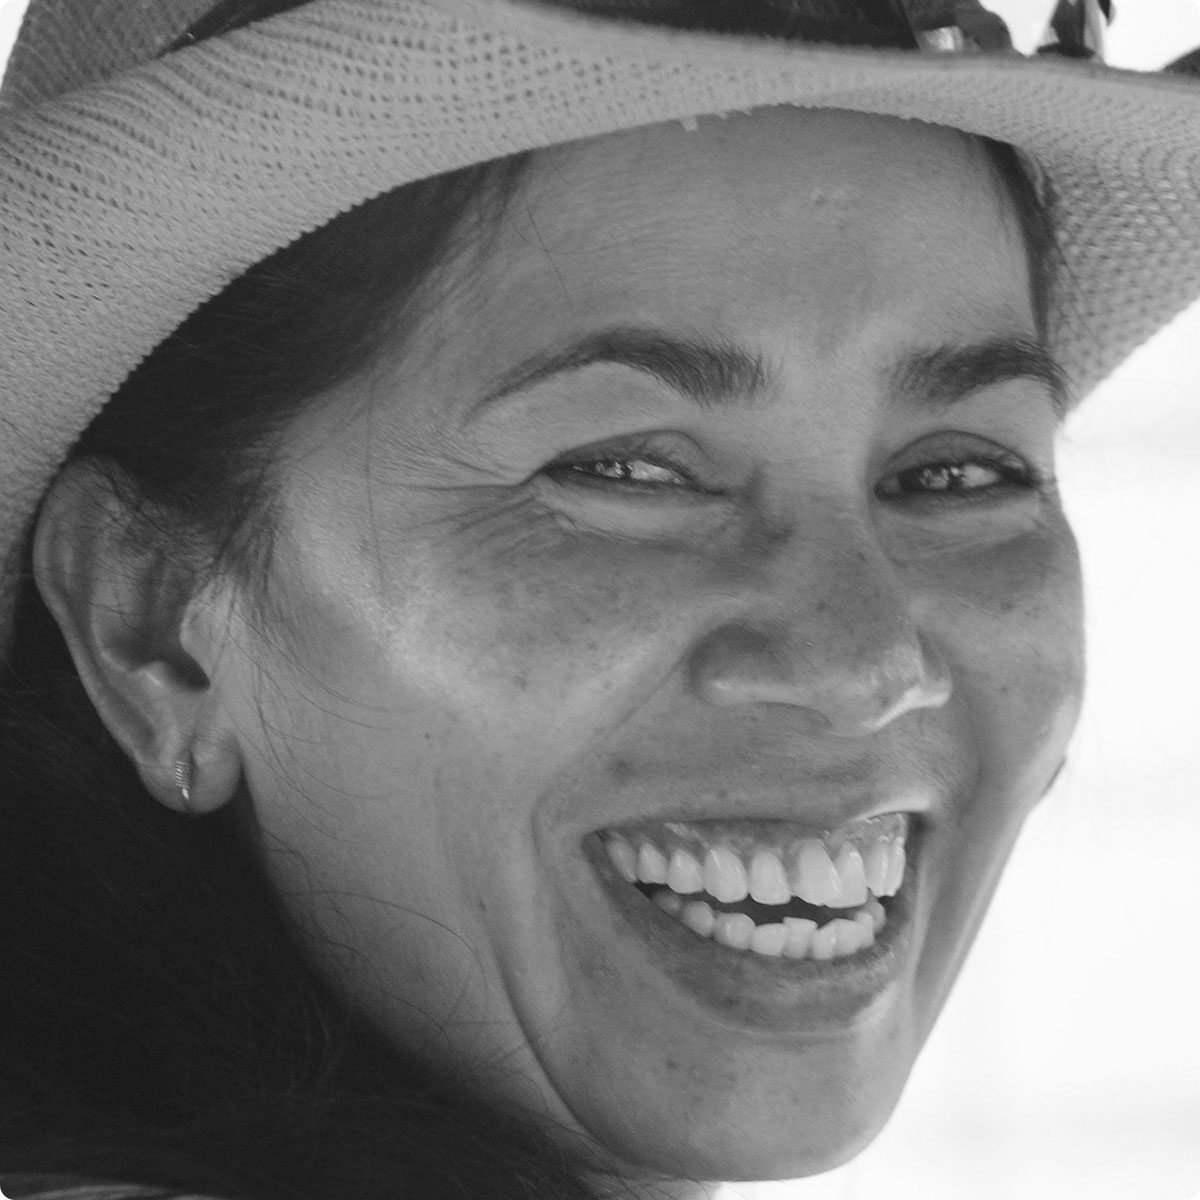 https://justicemaine.org/wp-content/uploads/bw-pics-laughing-cowgirl.jpg